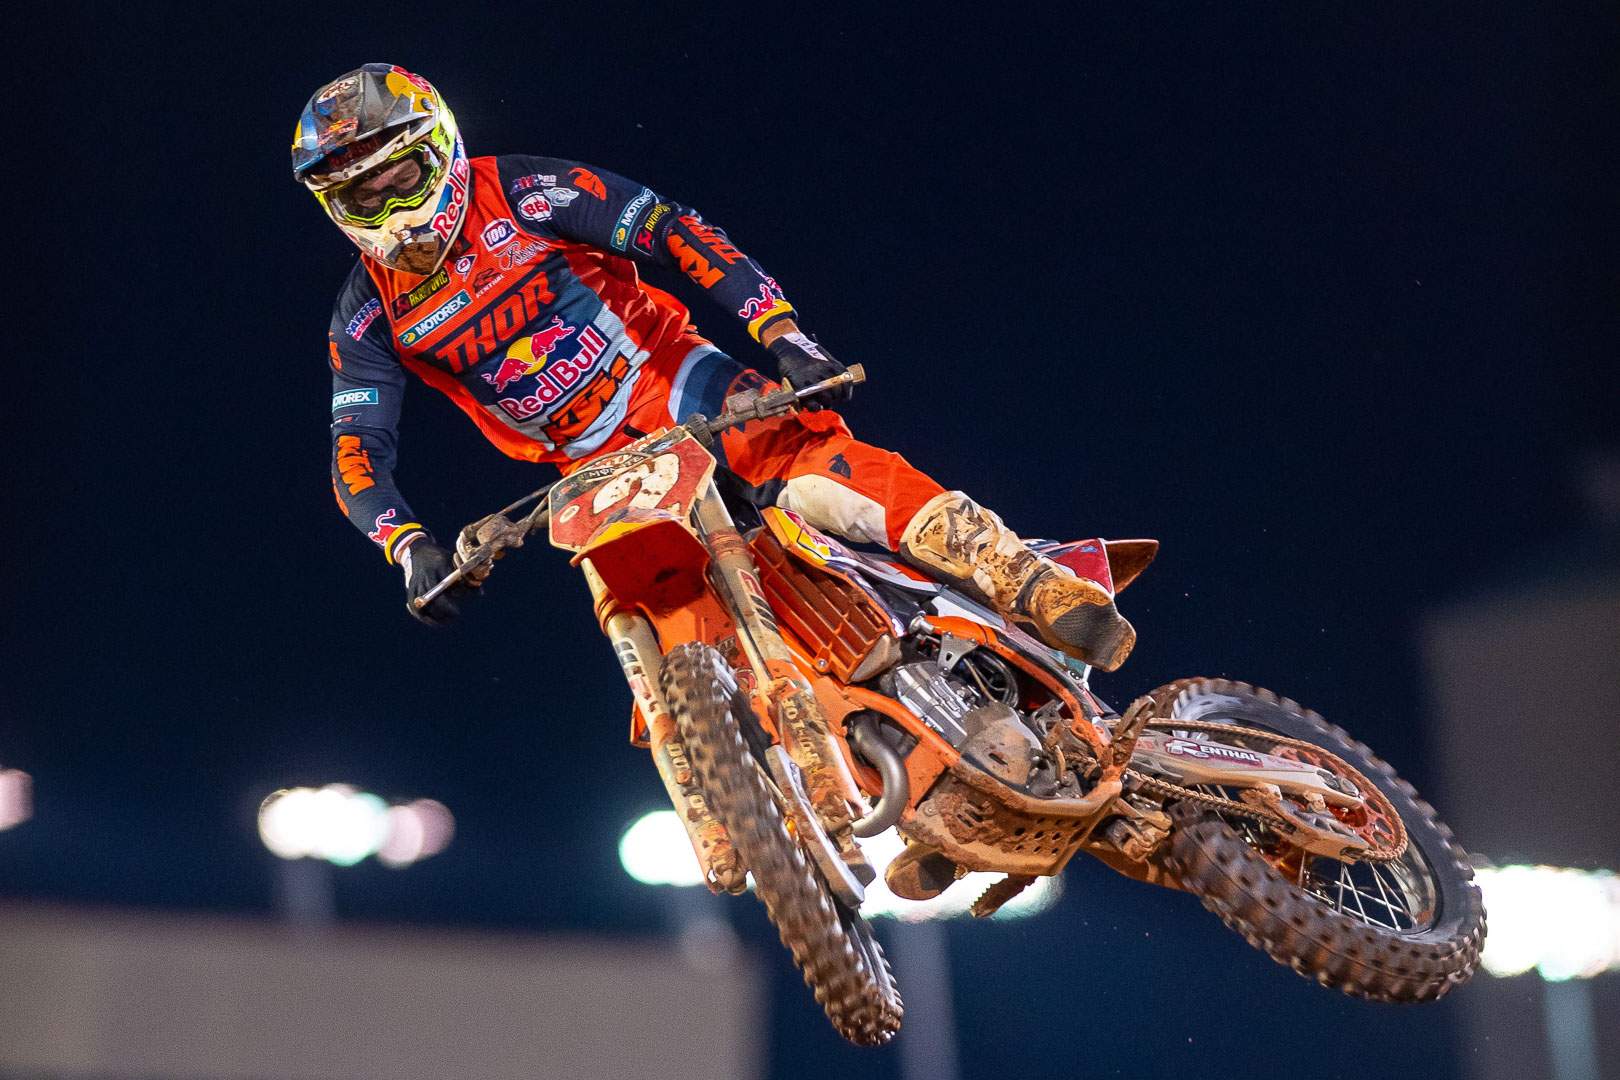 2021 Atlanta 3 Fantasy Supercross Tips: Cooper Webb